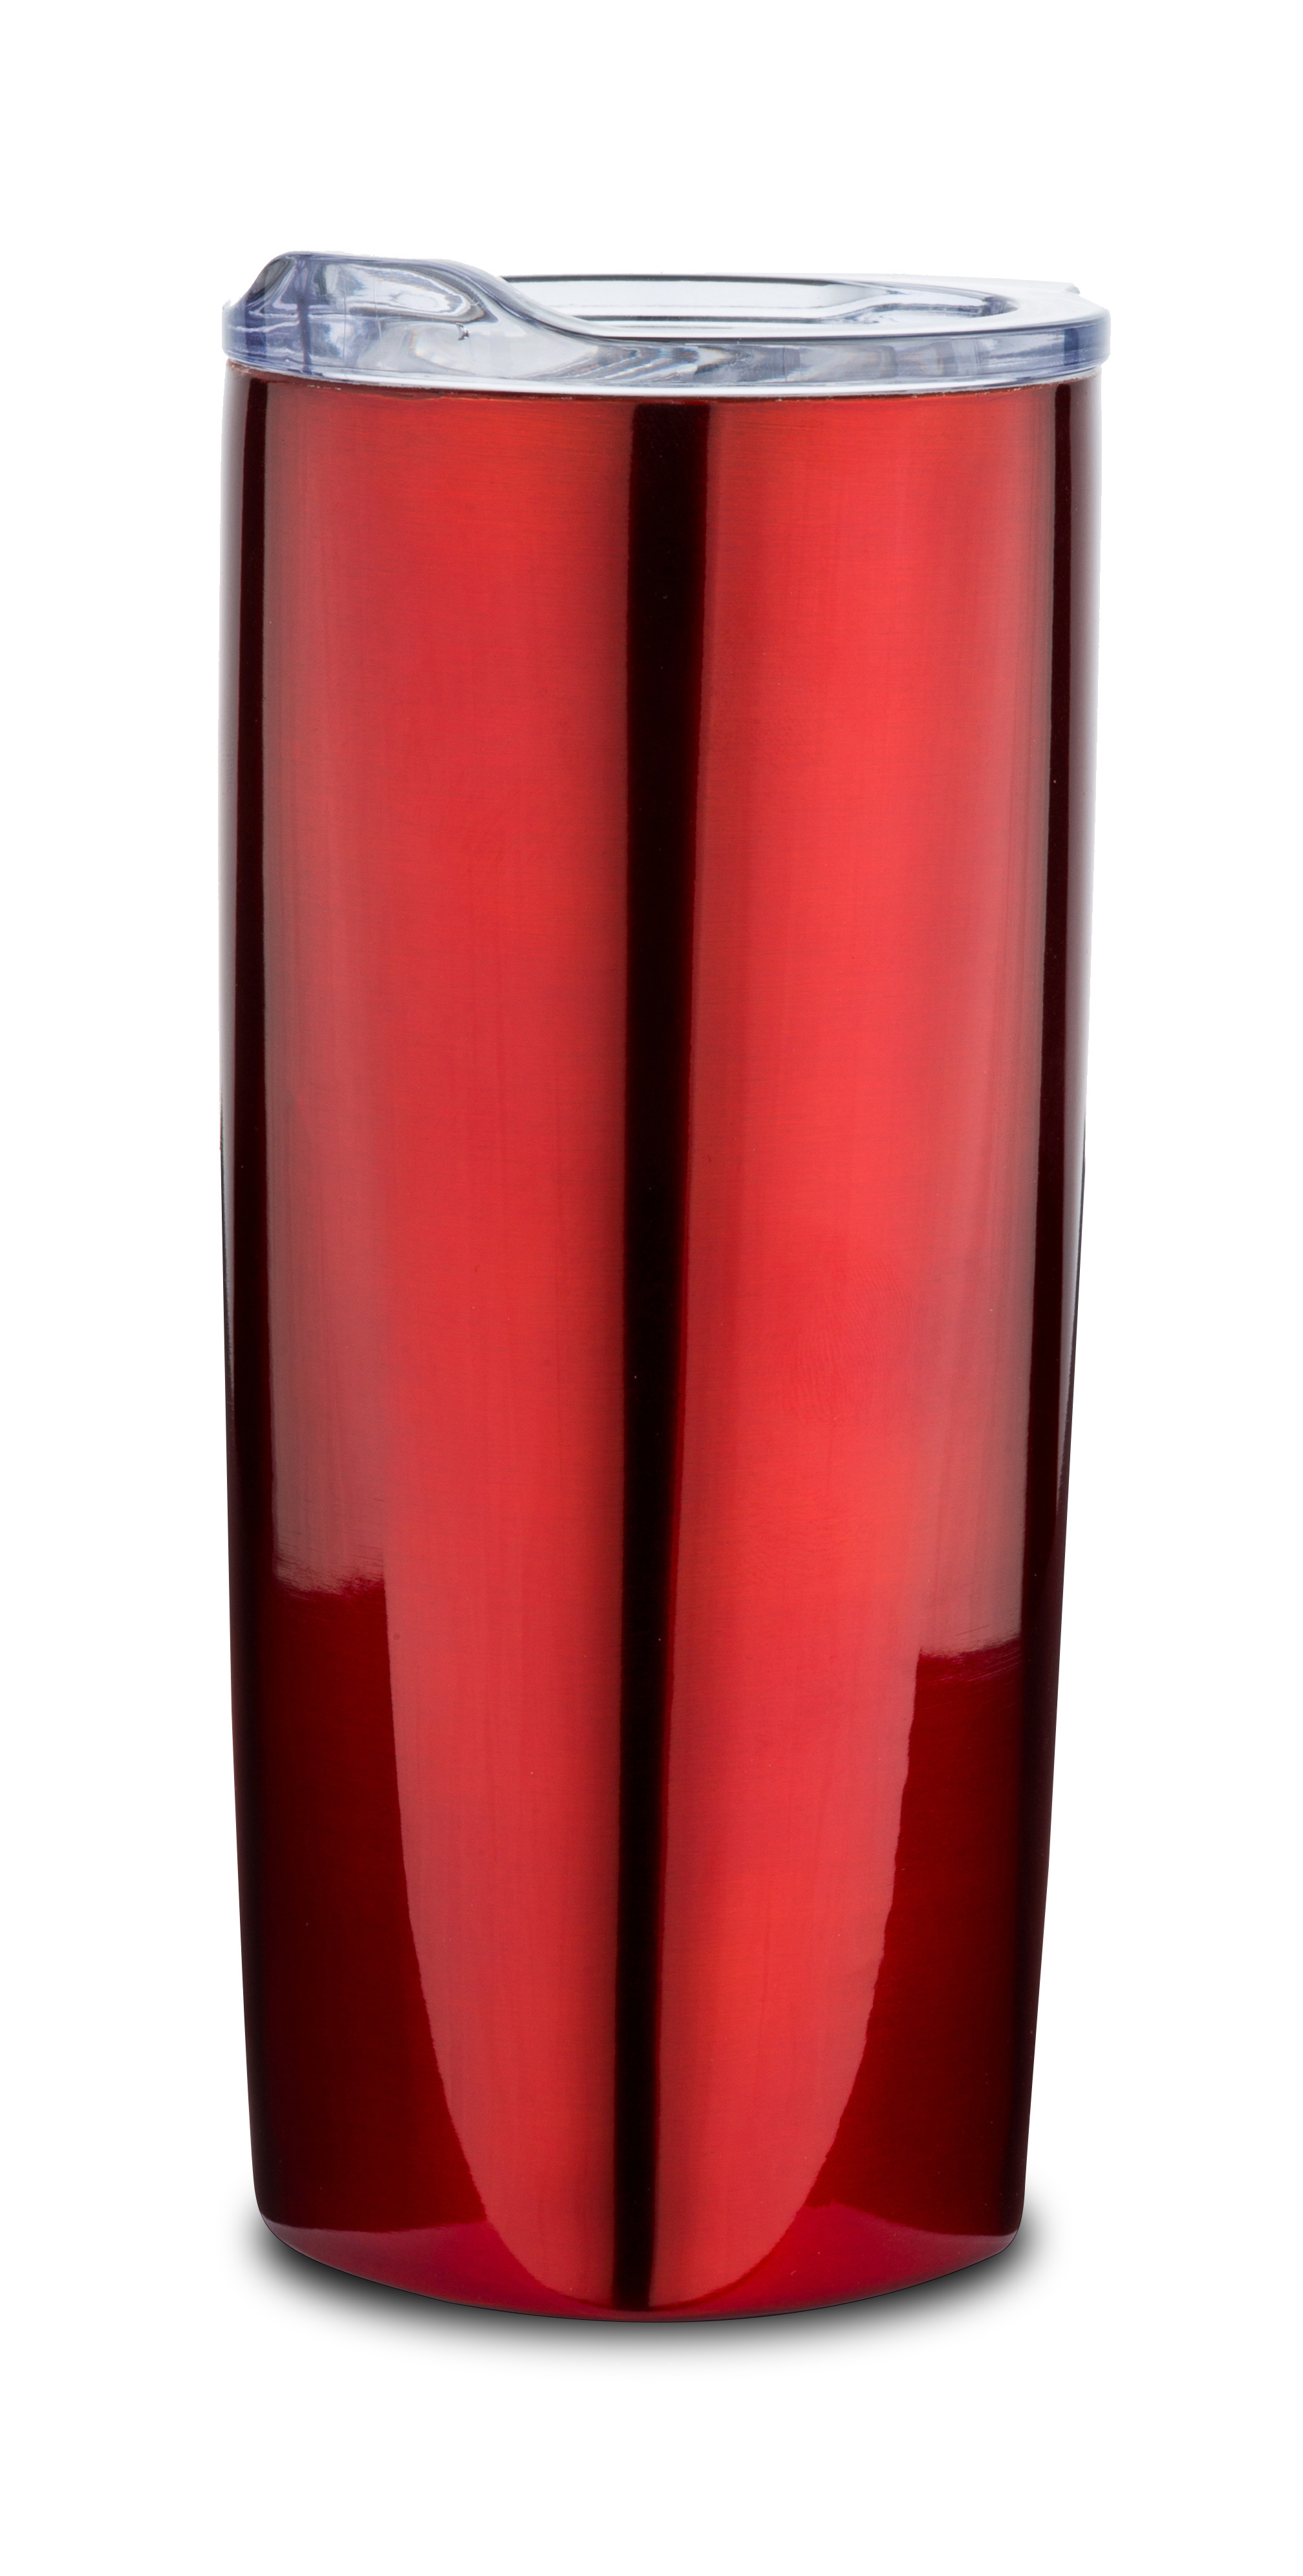 Termos inox 440 ml Red, Acer somproduct.ro